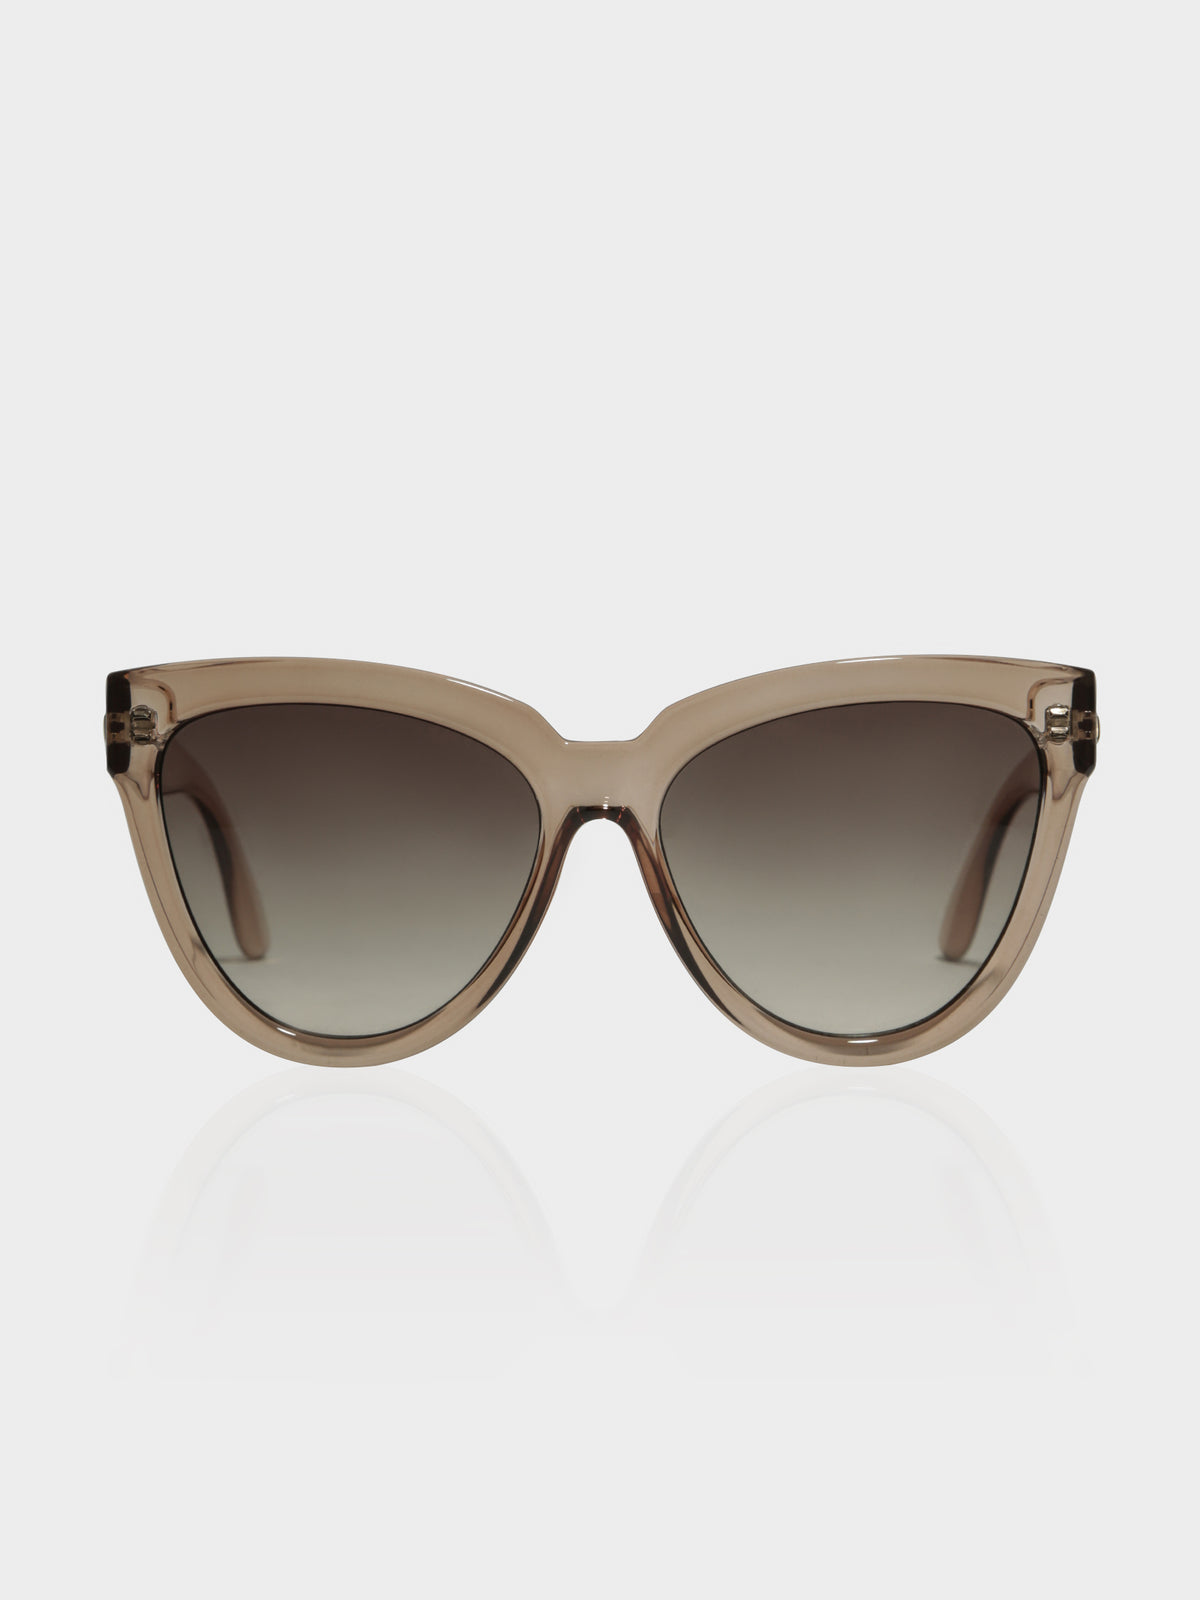 Liar Liar Sunglasses in Cream